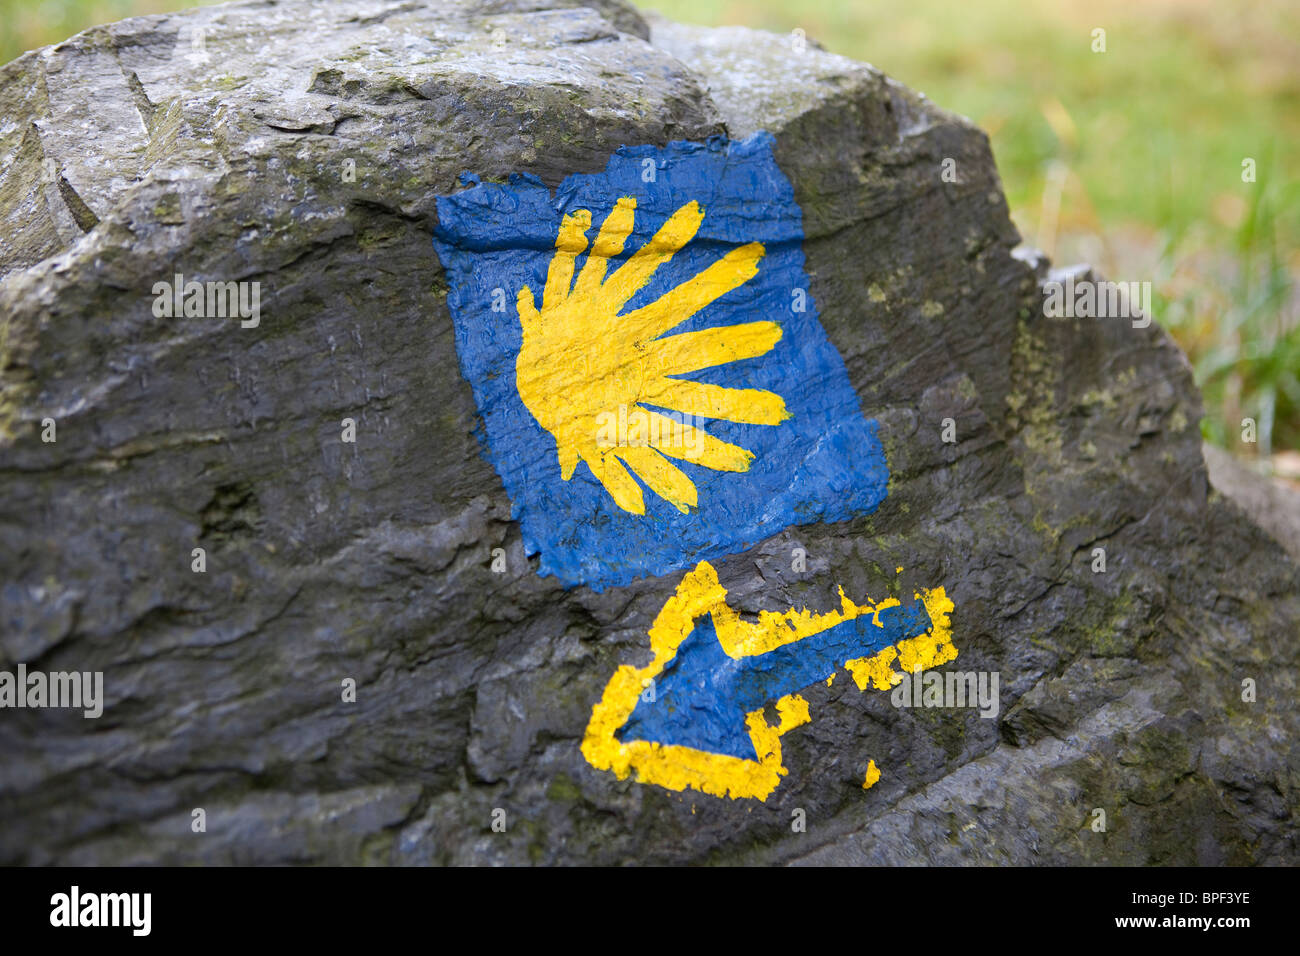 the sign of the Camino de Santiago trail on a stone - Stock Image